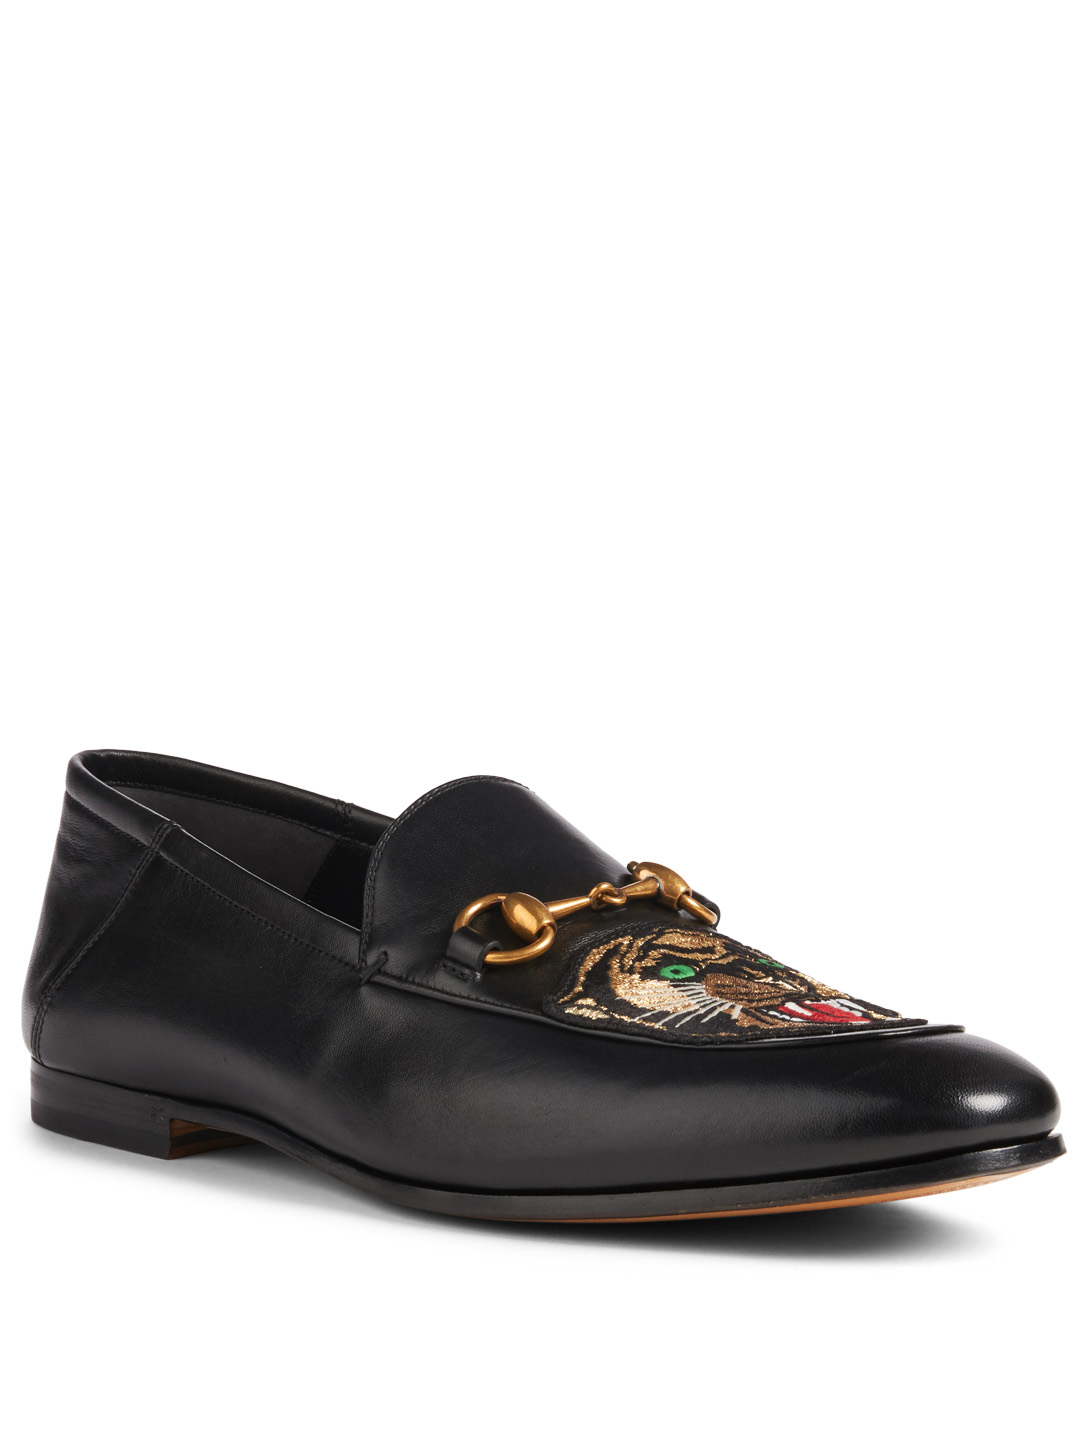 82e9de3ac55 ... GUCCI Brixton Leather Loafers With Panther Patch Designers Black ...